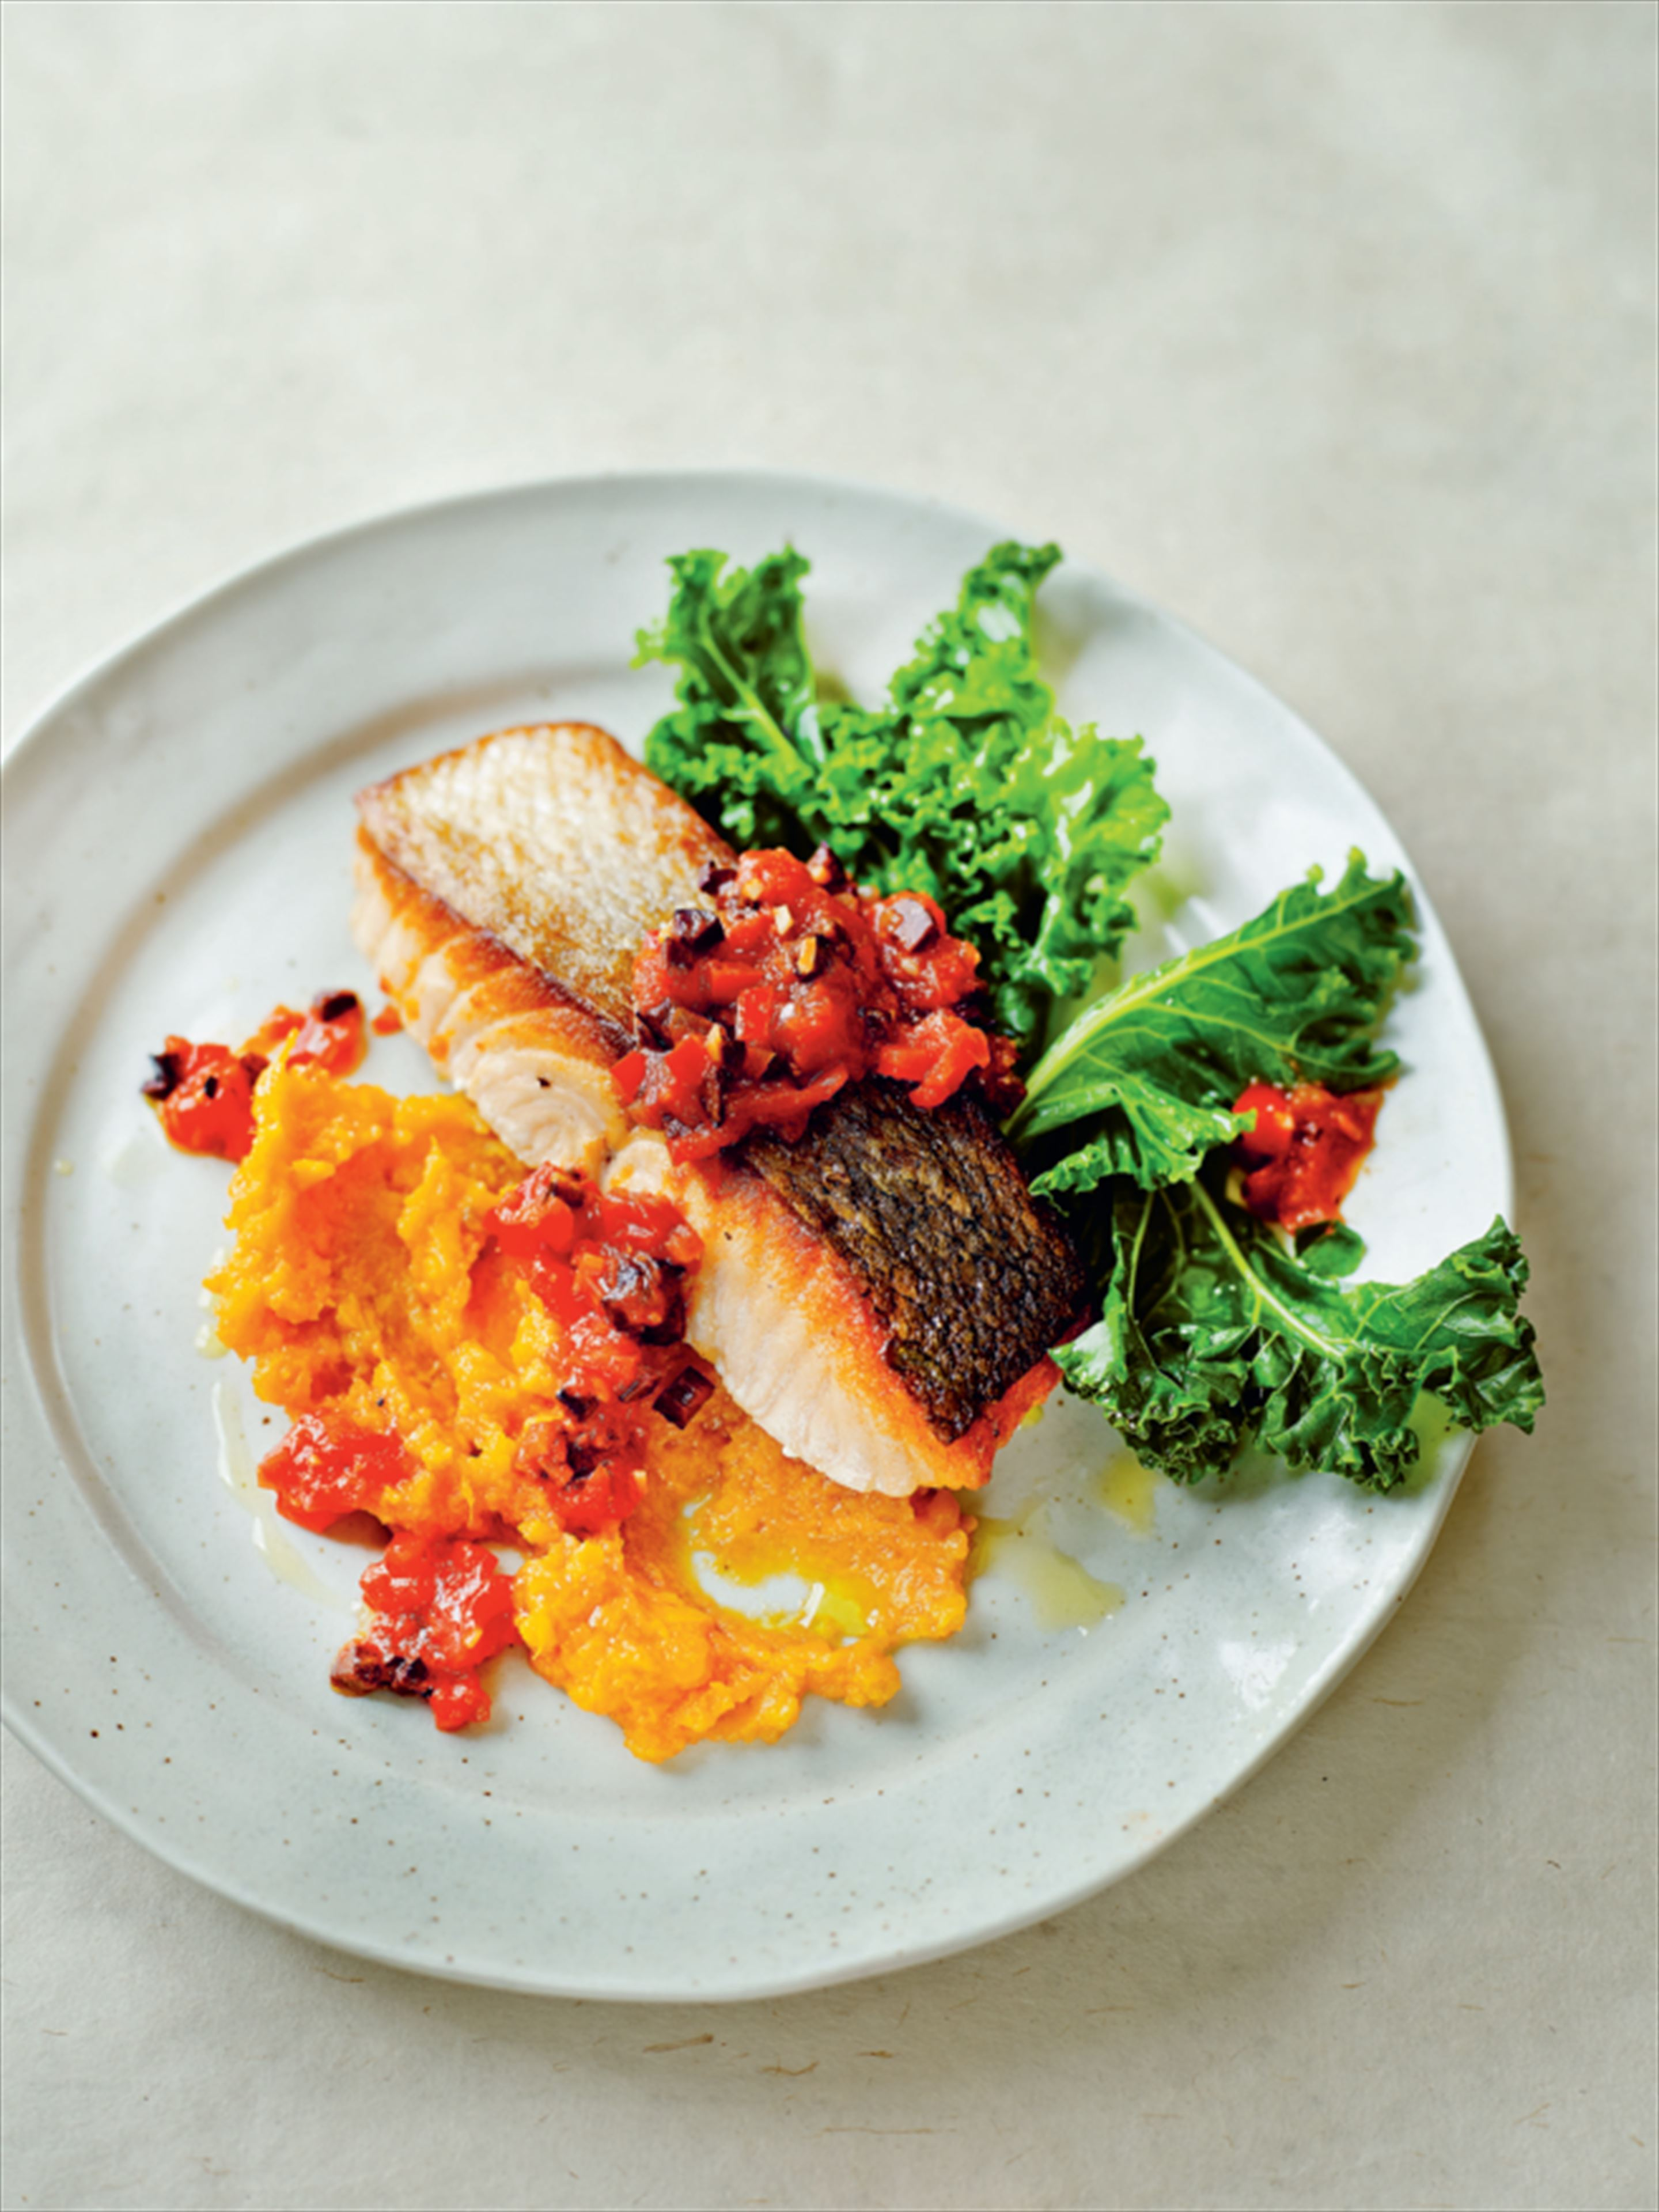 Mediterranean salmon with curly kale and sweet potato mash